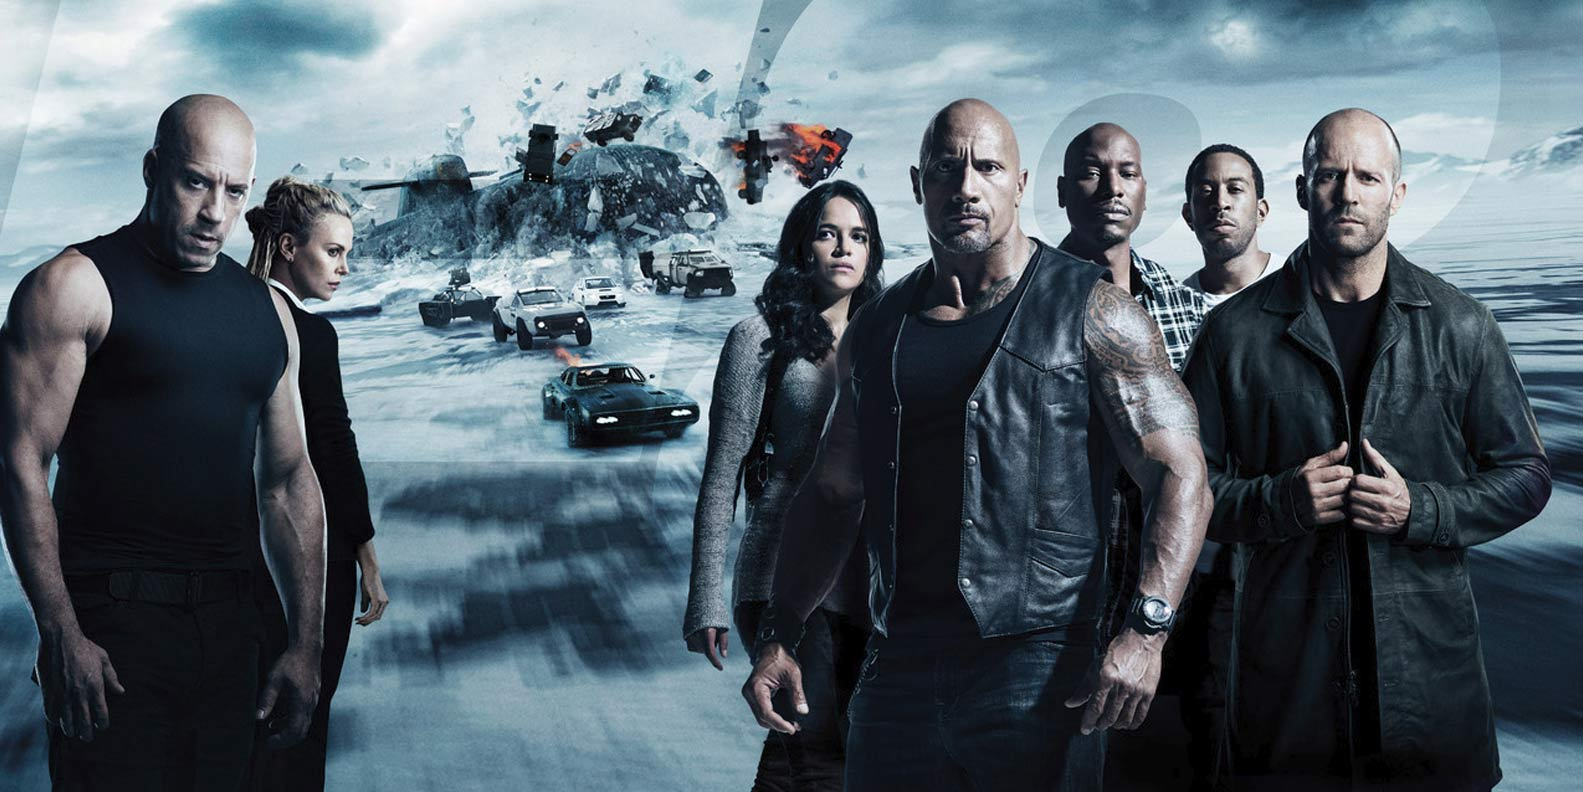 The Fate of the Furious - Header Image